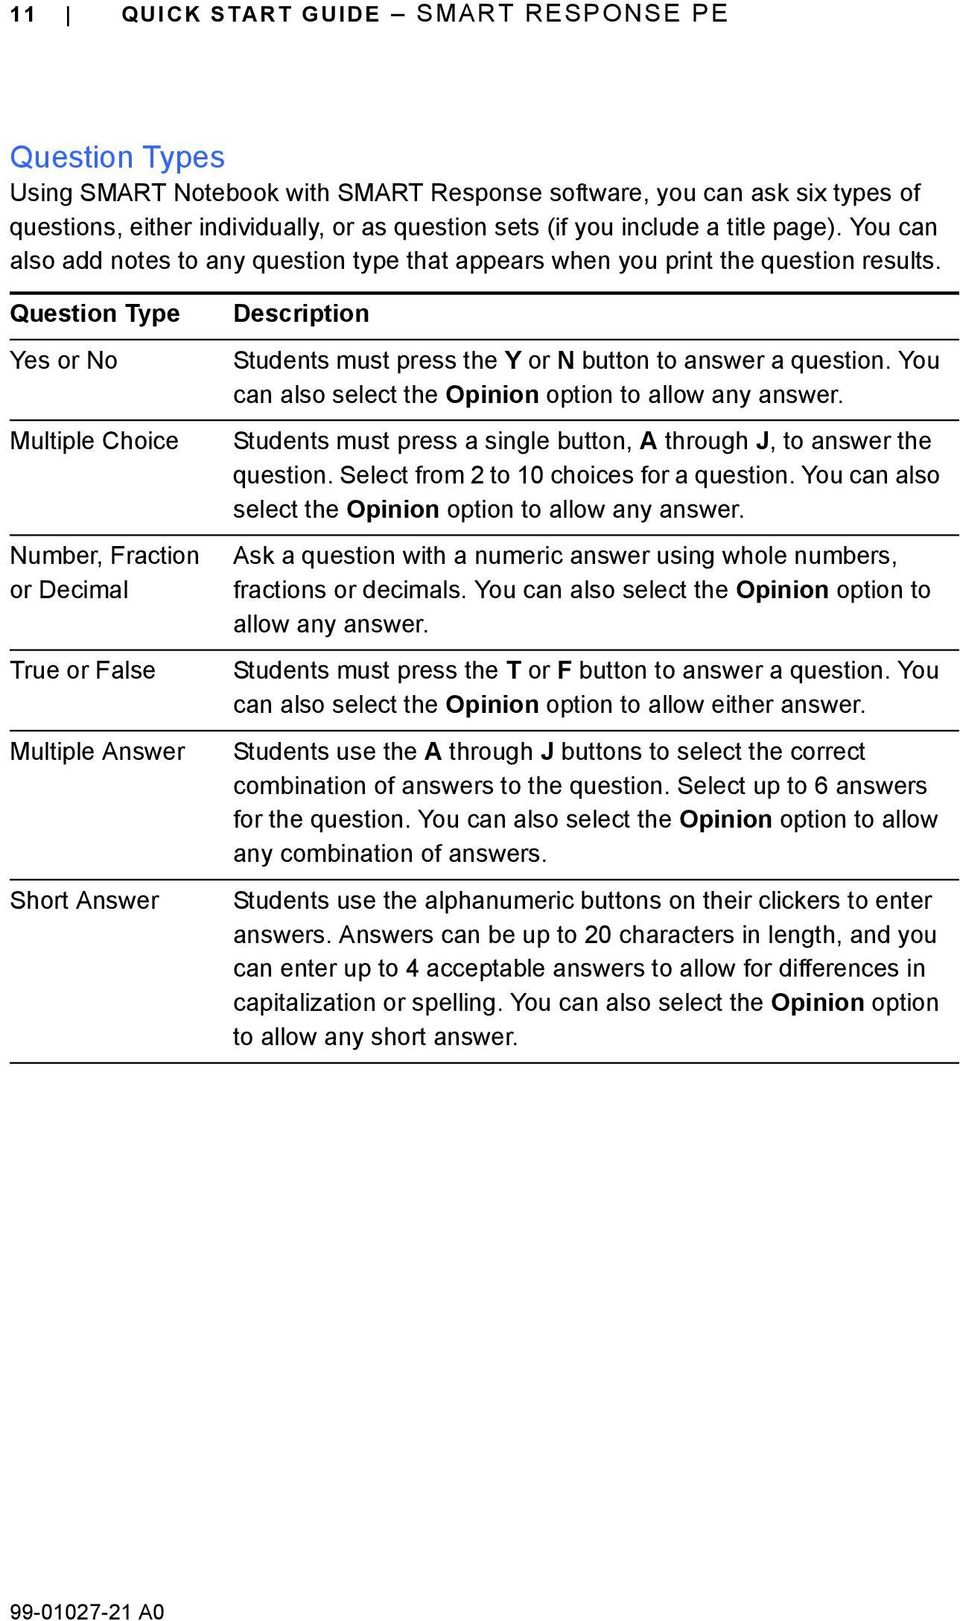 Question Type Yes or No Multiple Choice Number, Fraction or Decimal True or False Multiple Answer Short Answer Description Students must press the Y or N button to answer a question.